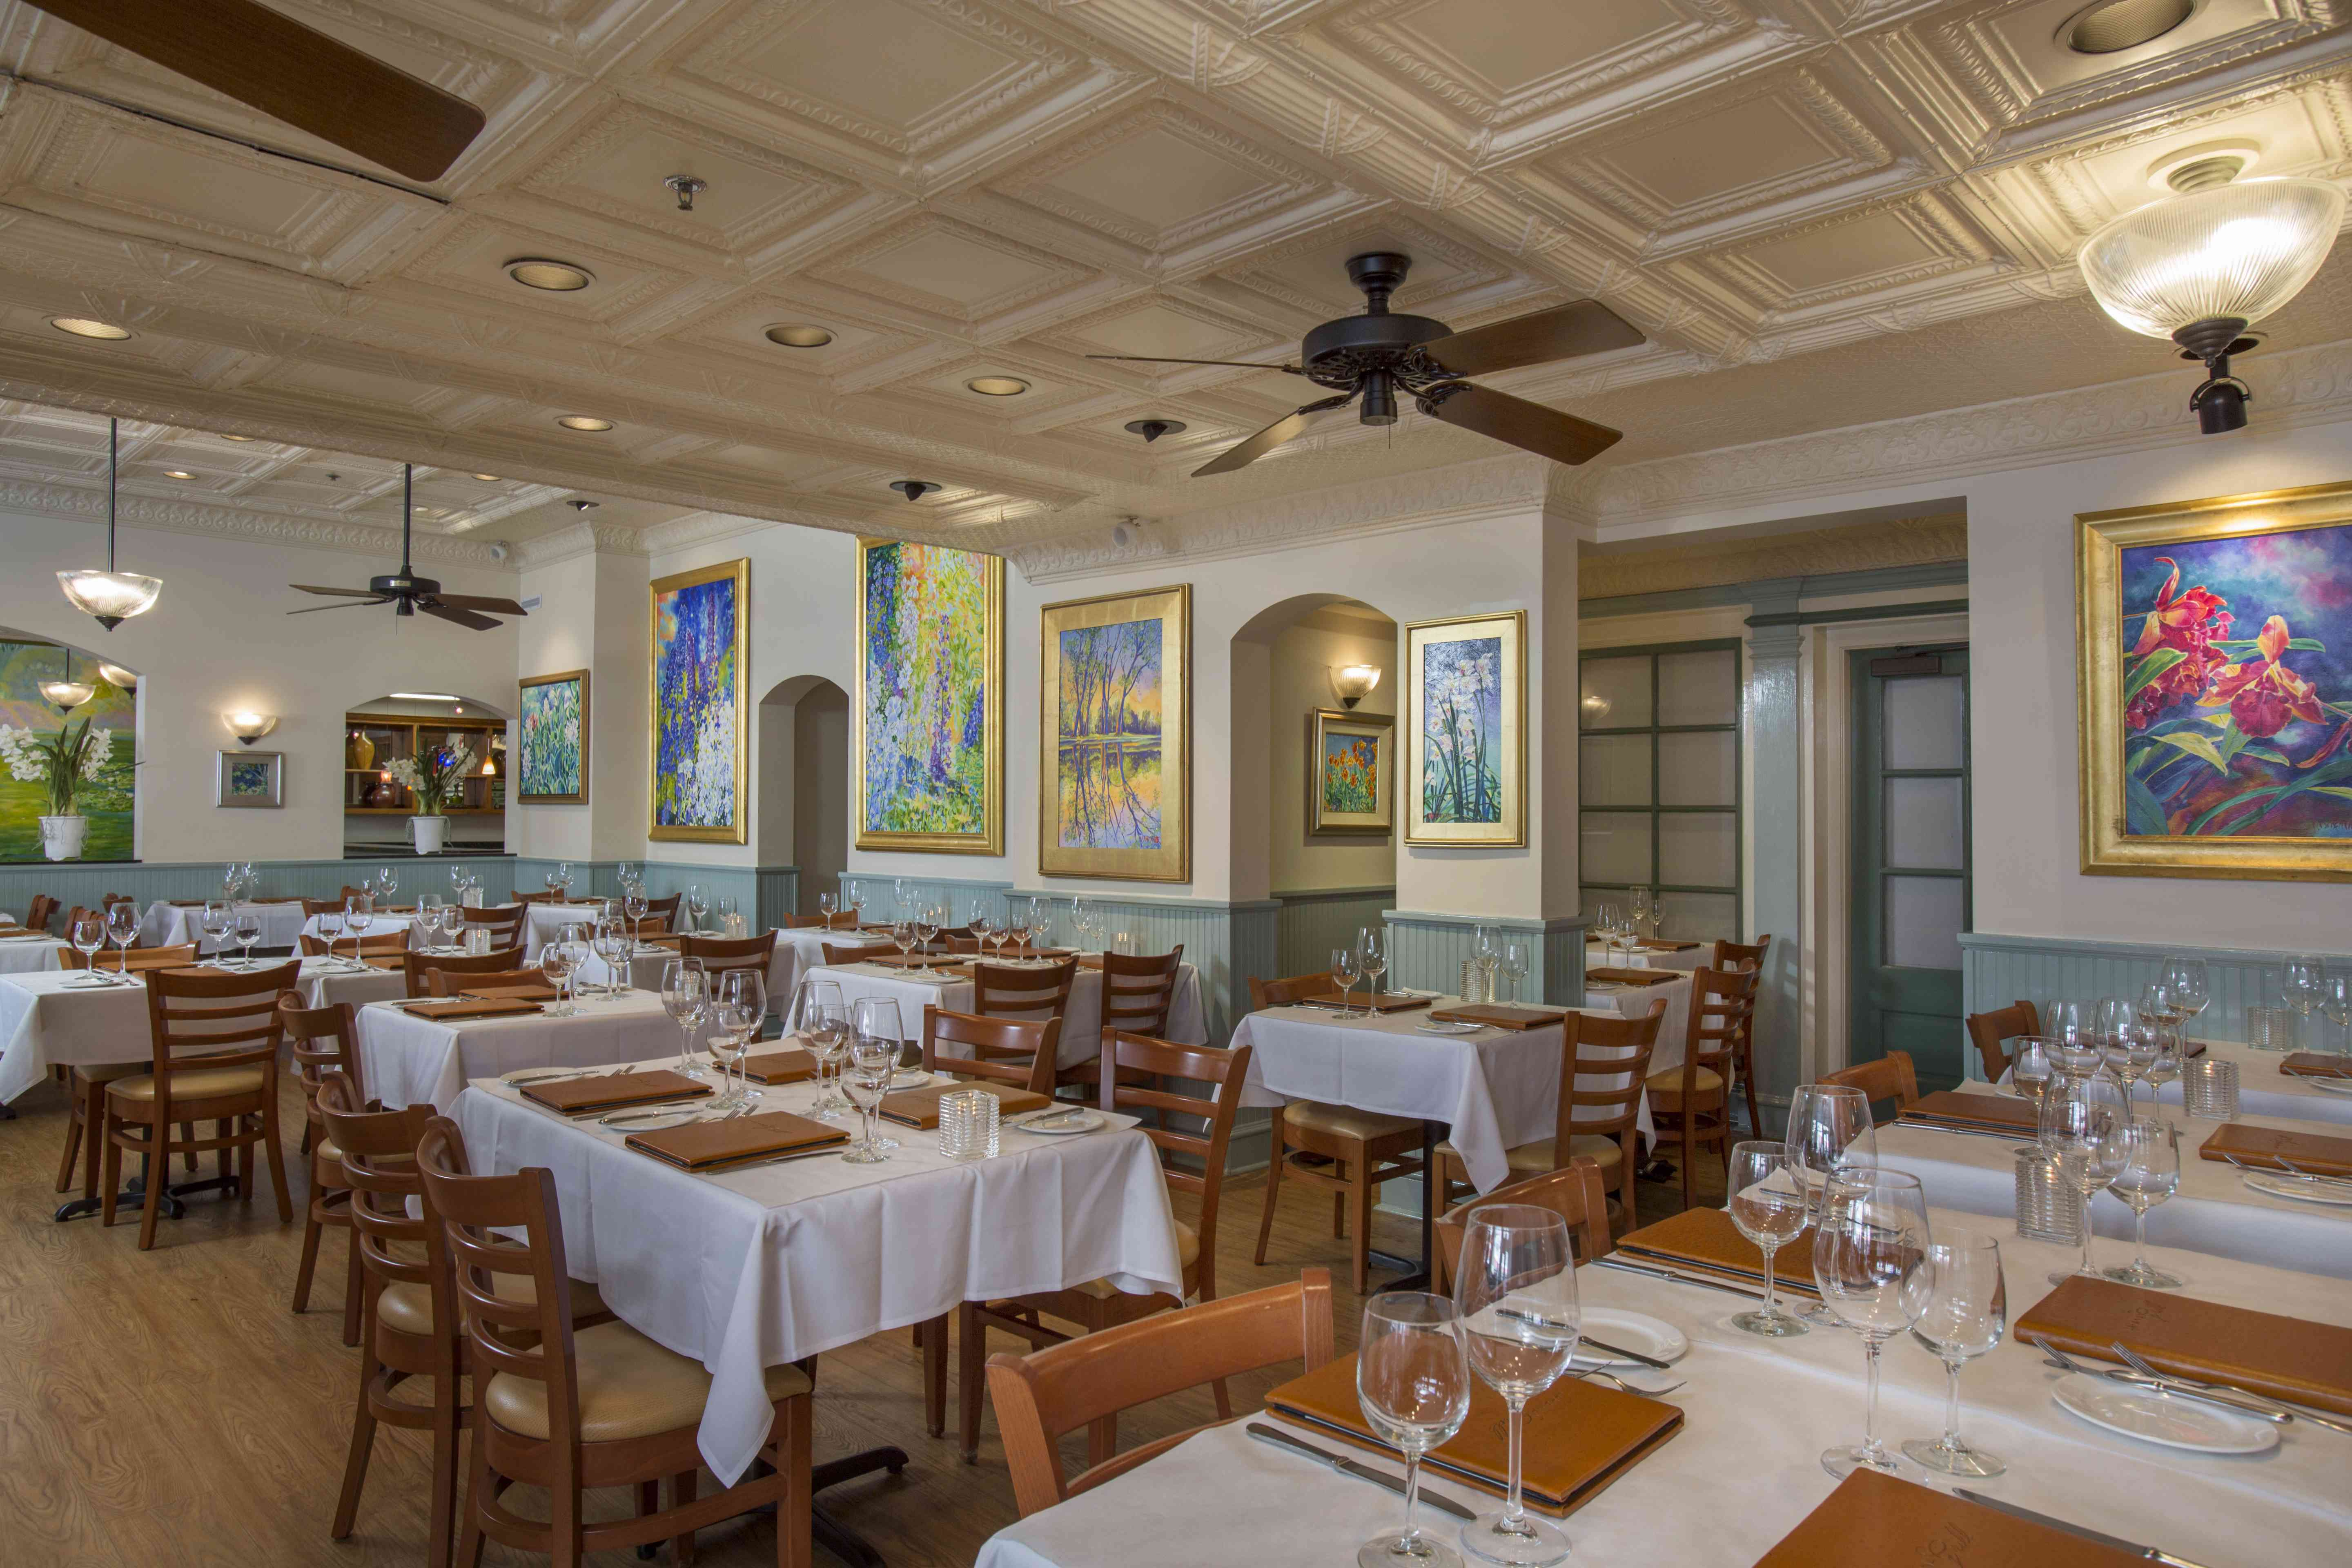 Dining room of Lahaina Grill